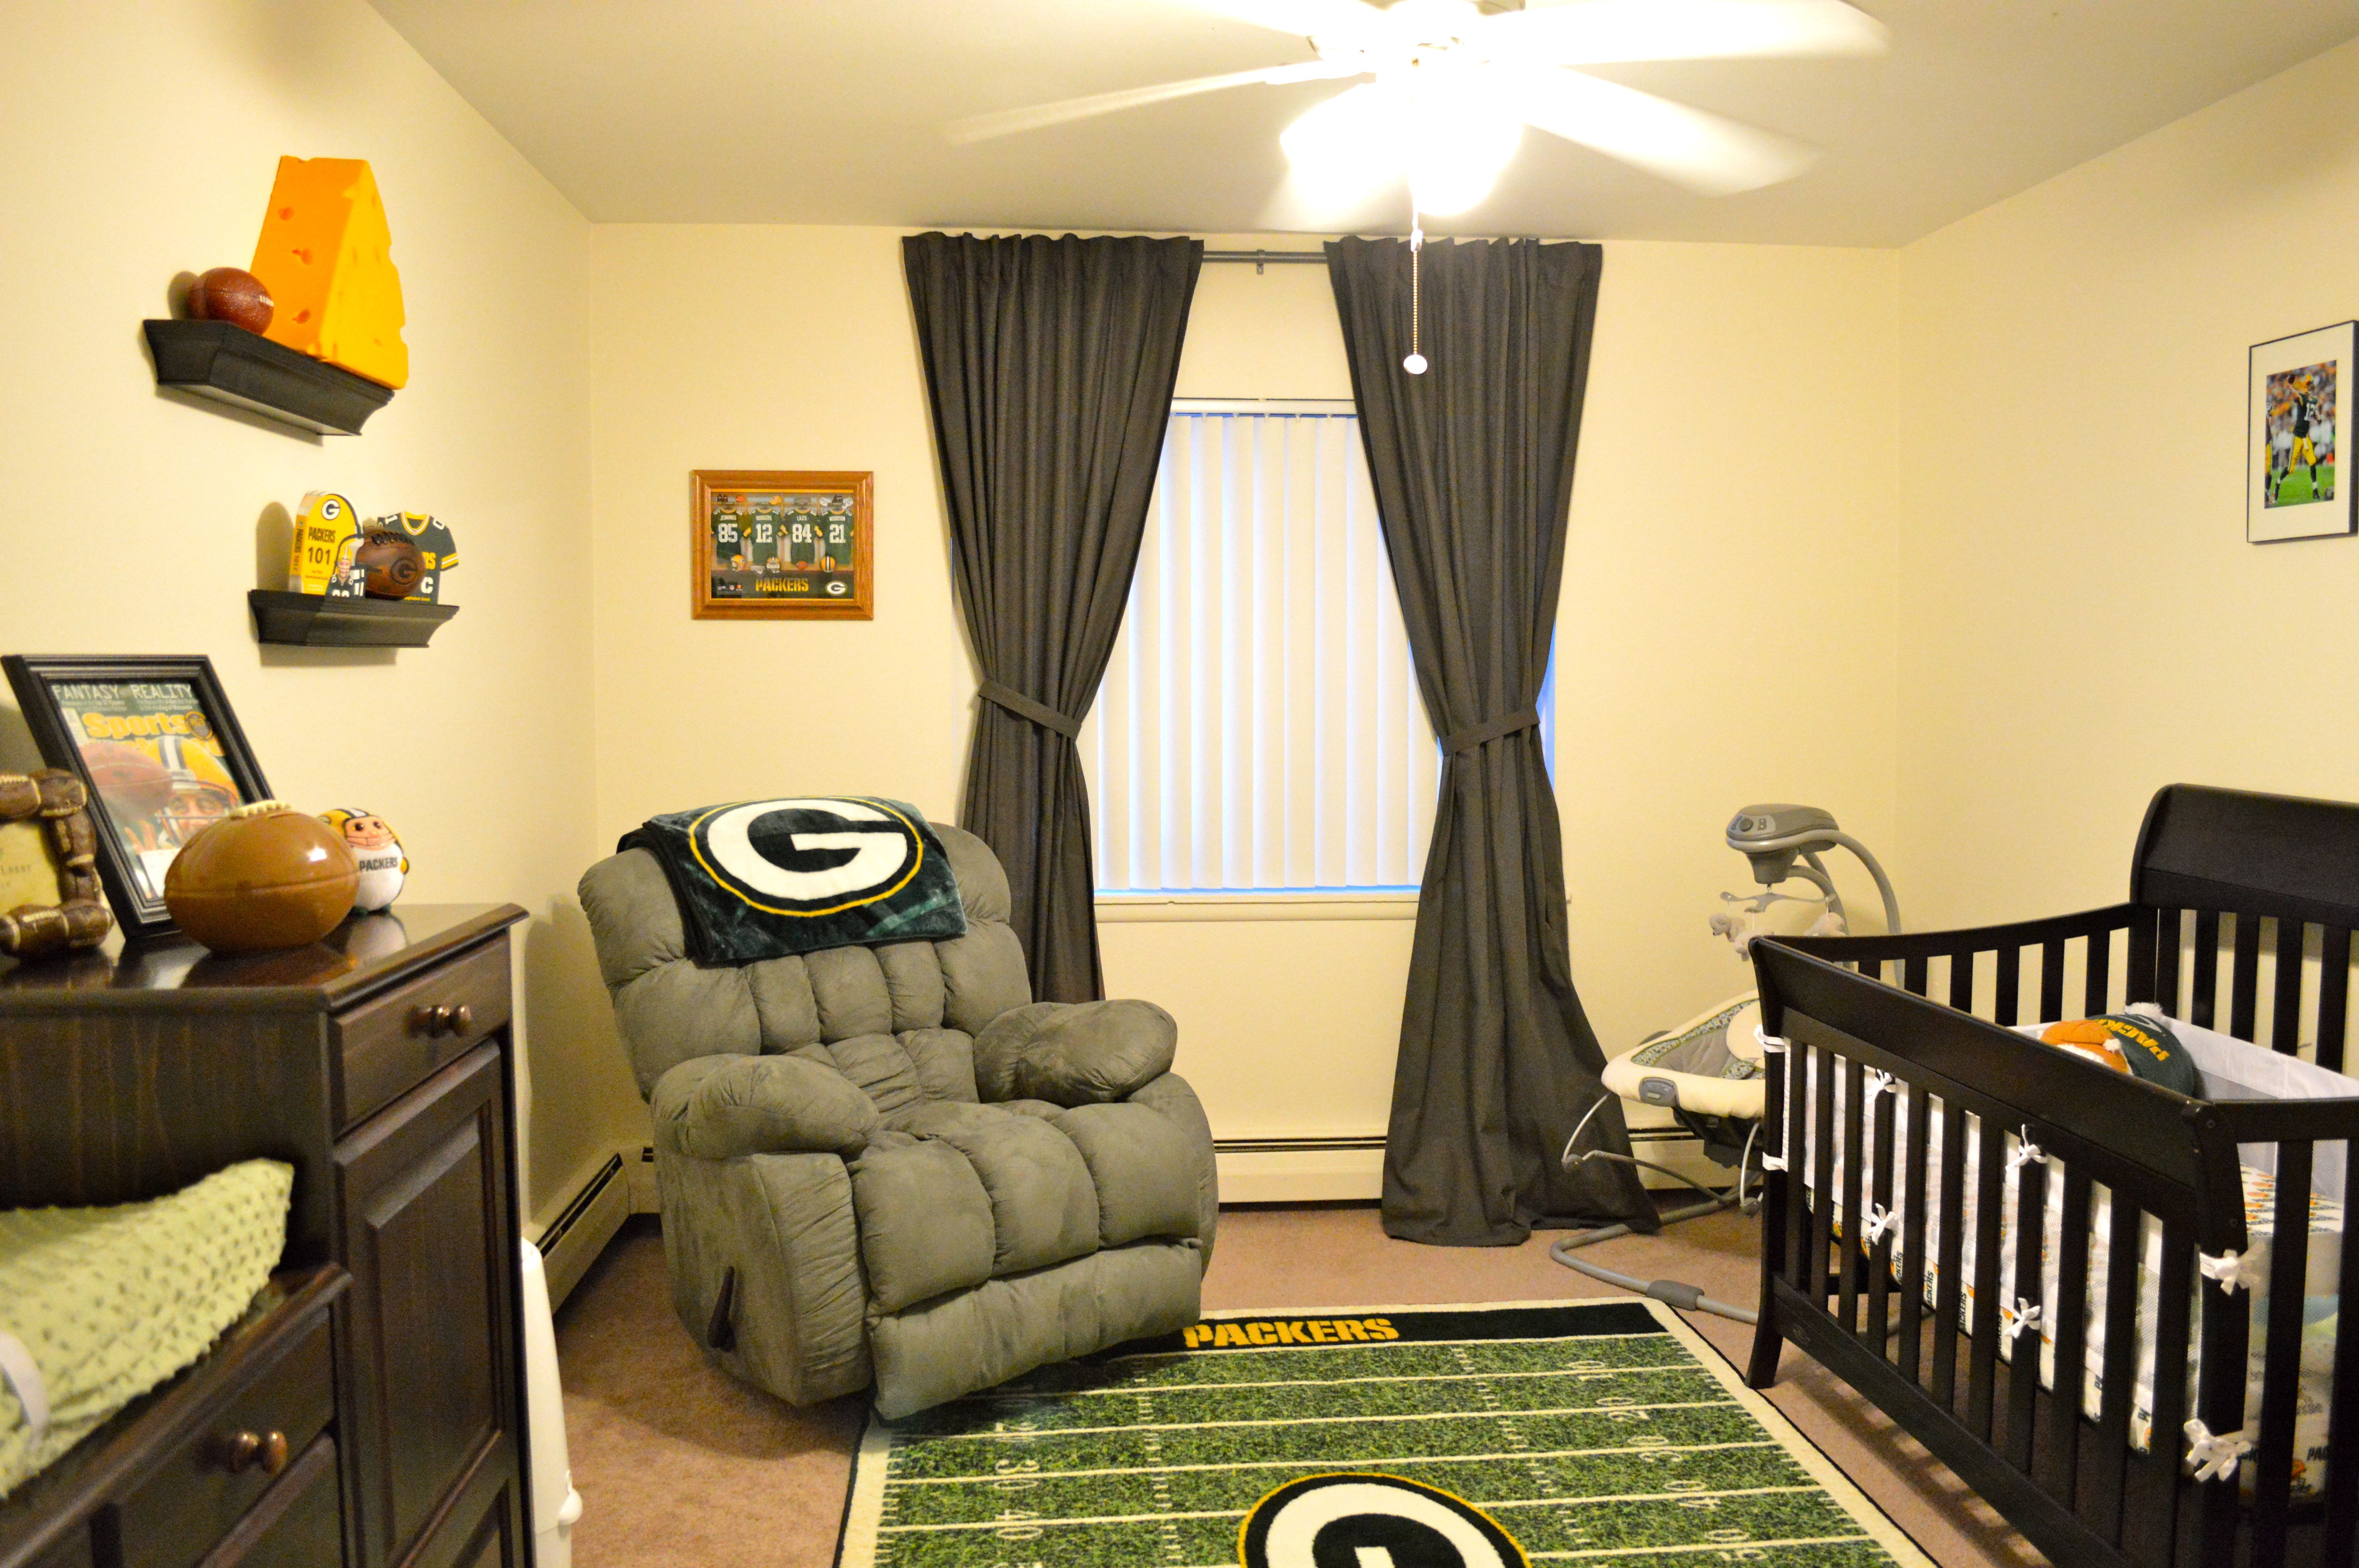 Pin By Kate L On Bring On The Babies Nursery Room Boy Boy Nursery Themes Baby Boy Room Nursery